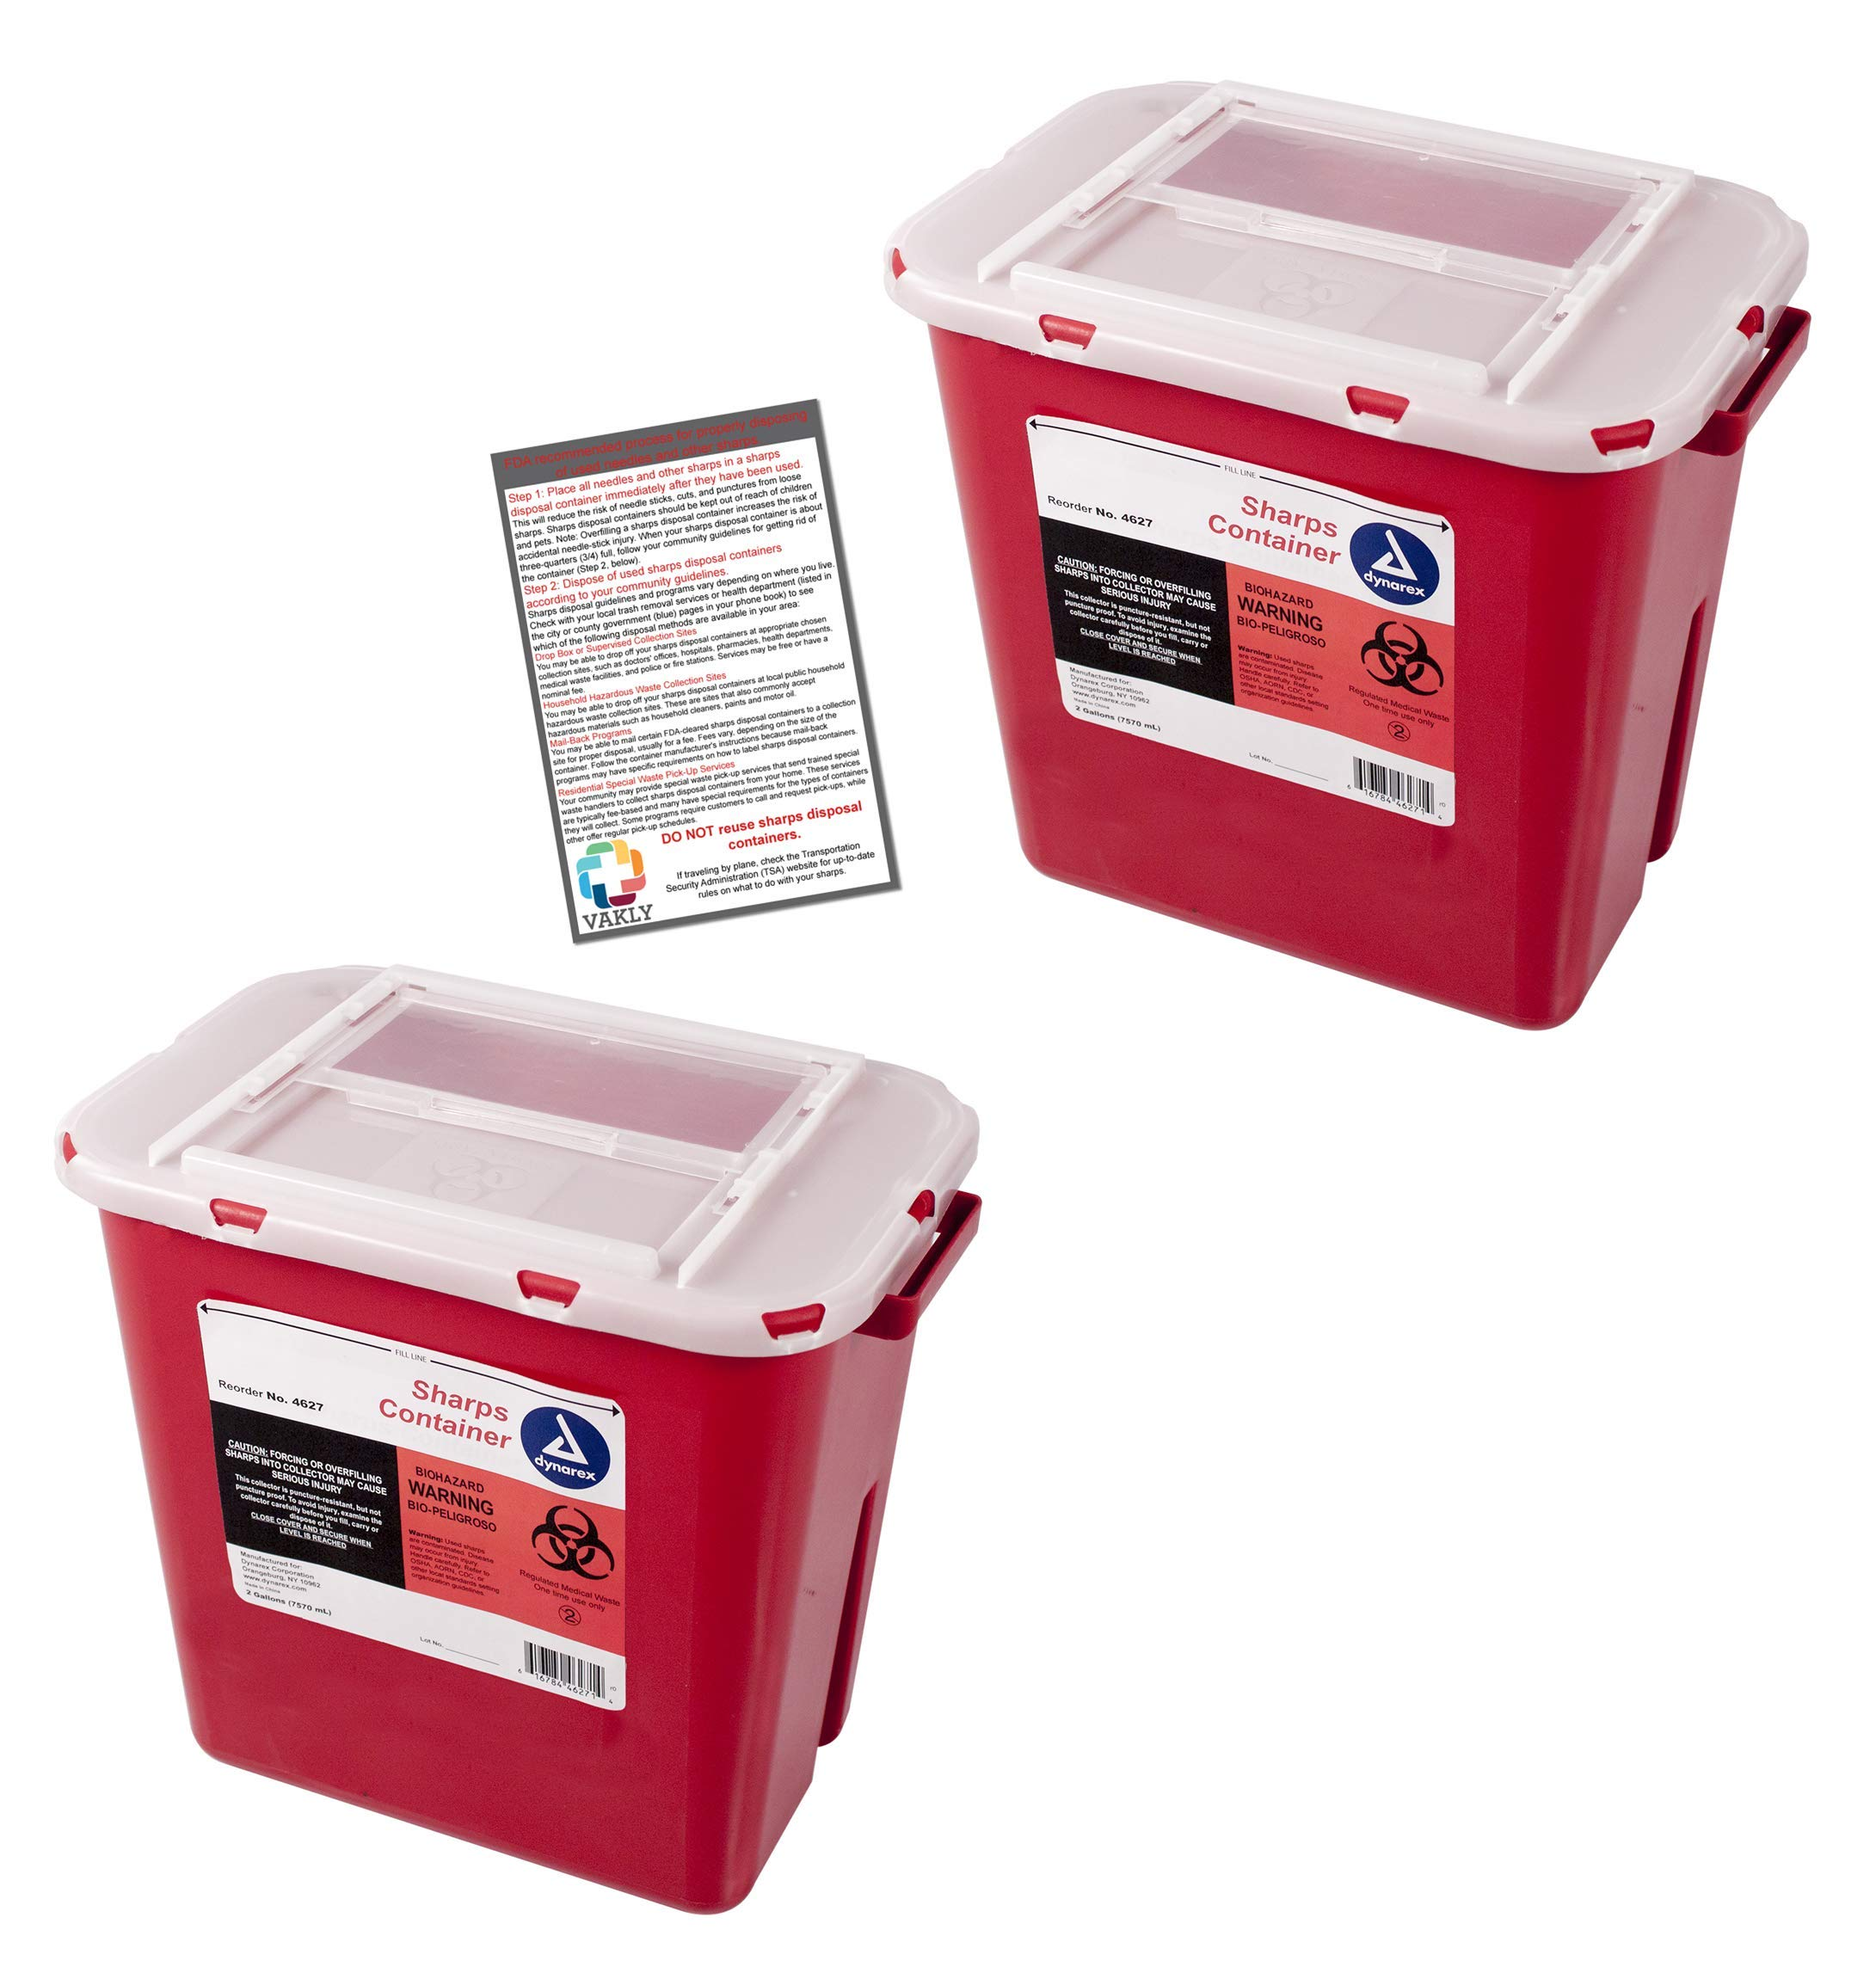 Sharps Container 2 Gallon - Plus Vakly Biohazard Disposal Guide (2 Pack) by Vakly